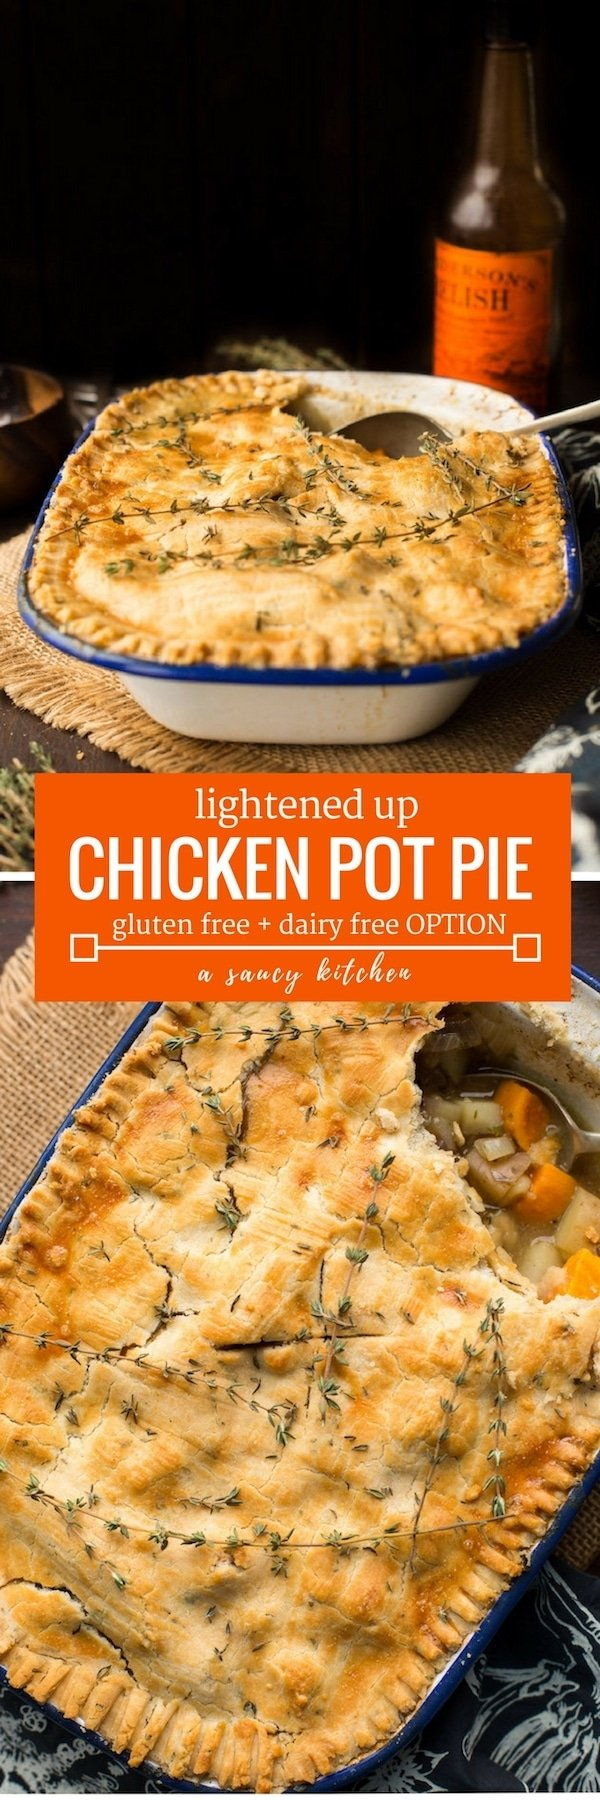 Lightened up Gluten Free Chicken Pot Pie loaded with veggies and topped with an herby crust   Dairy Free Option Available